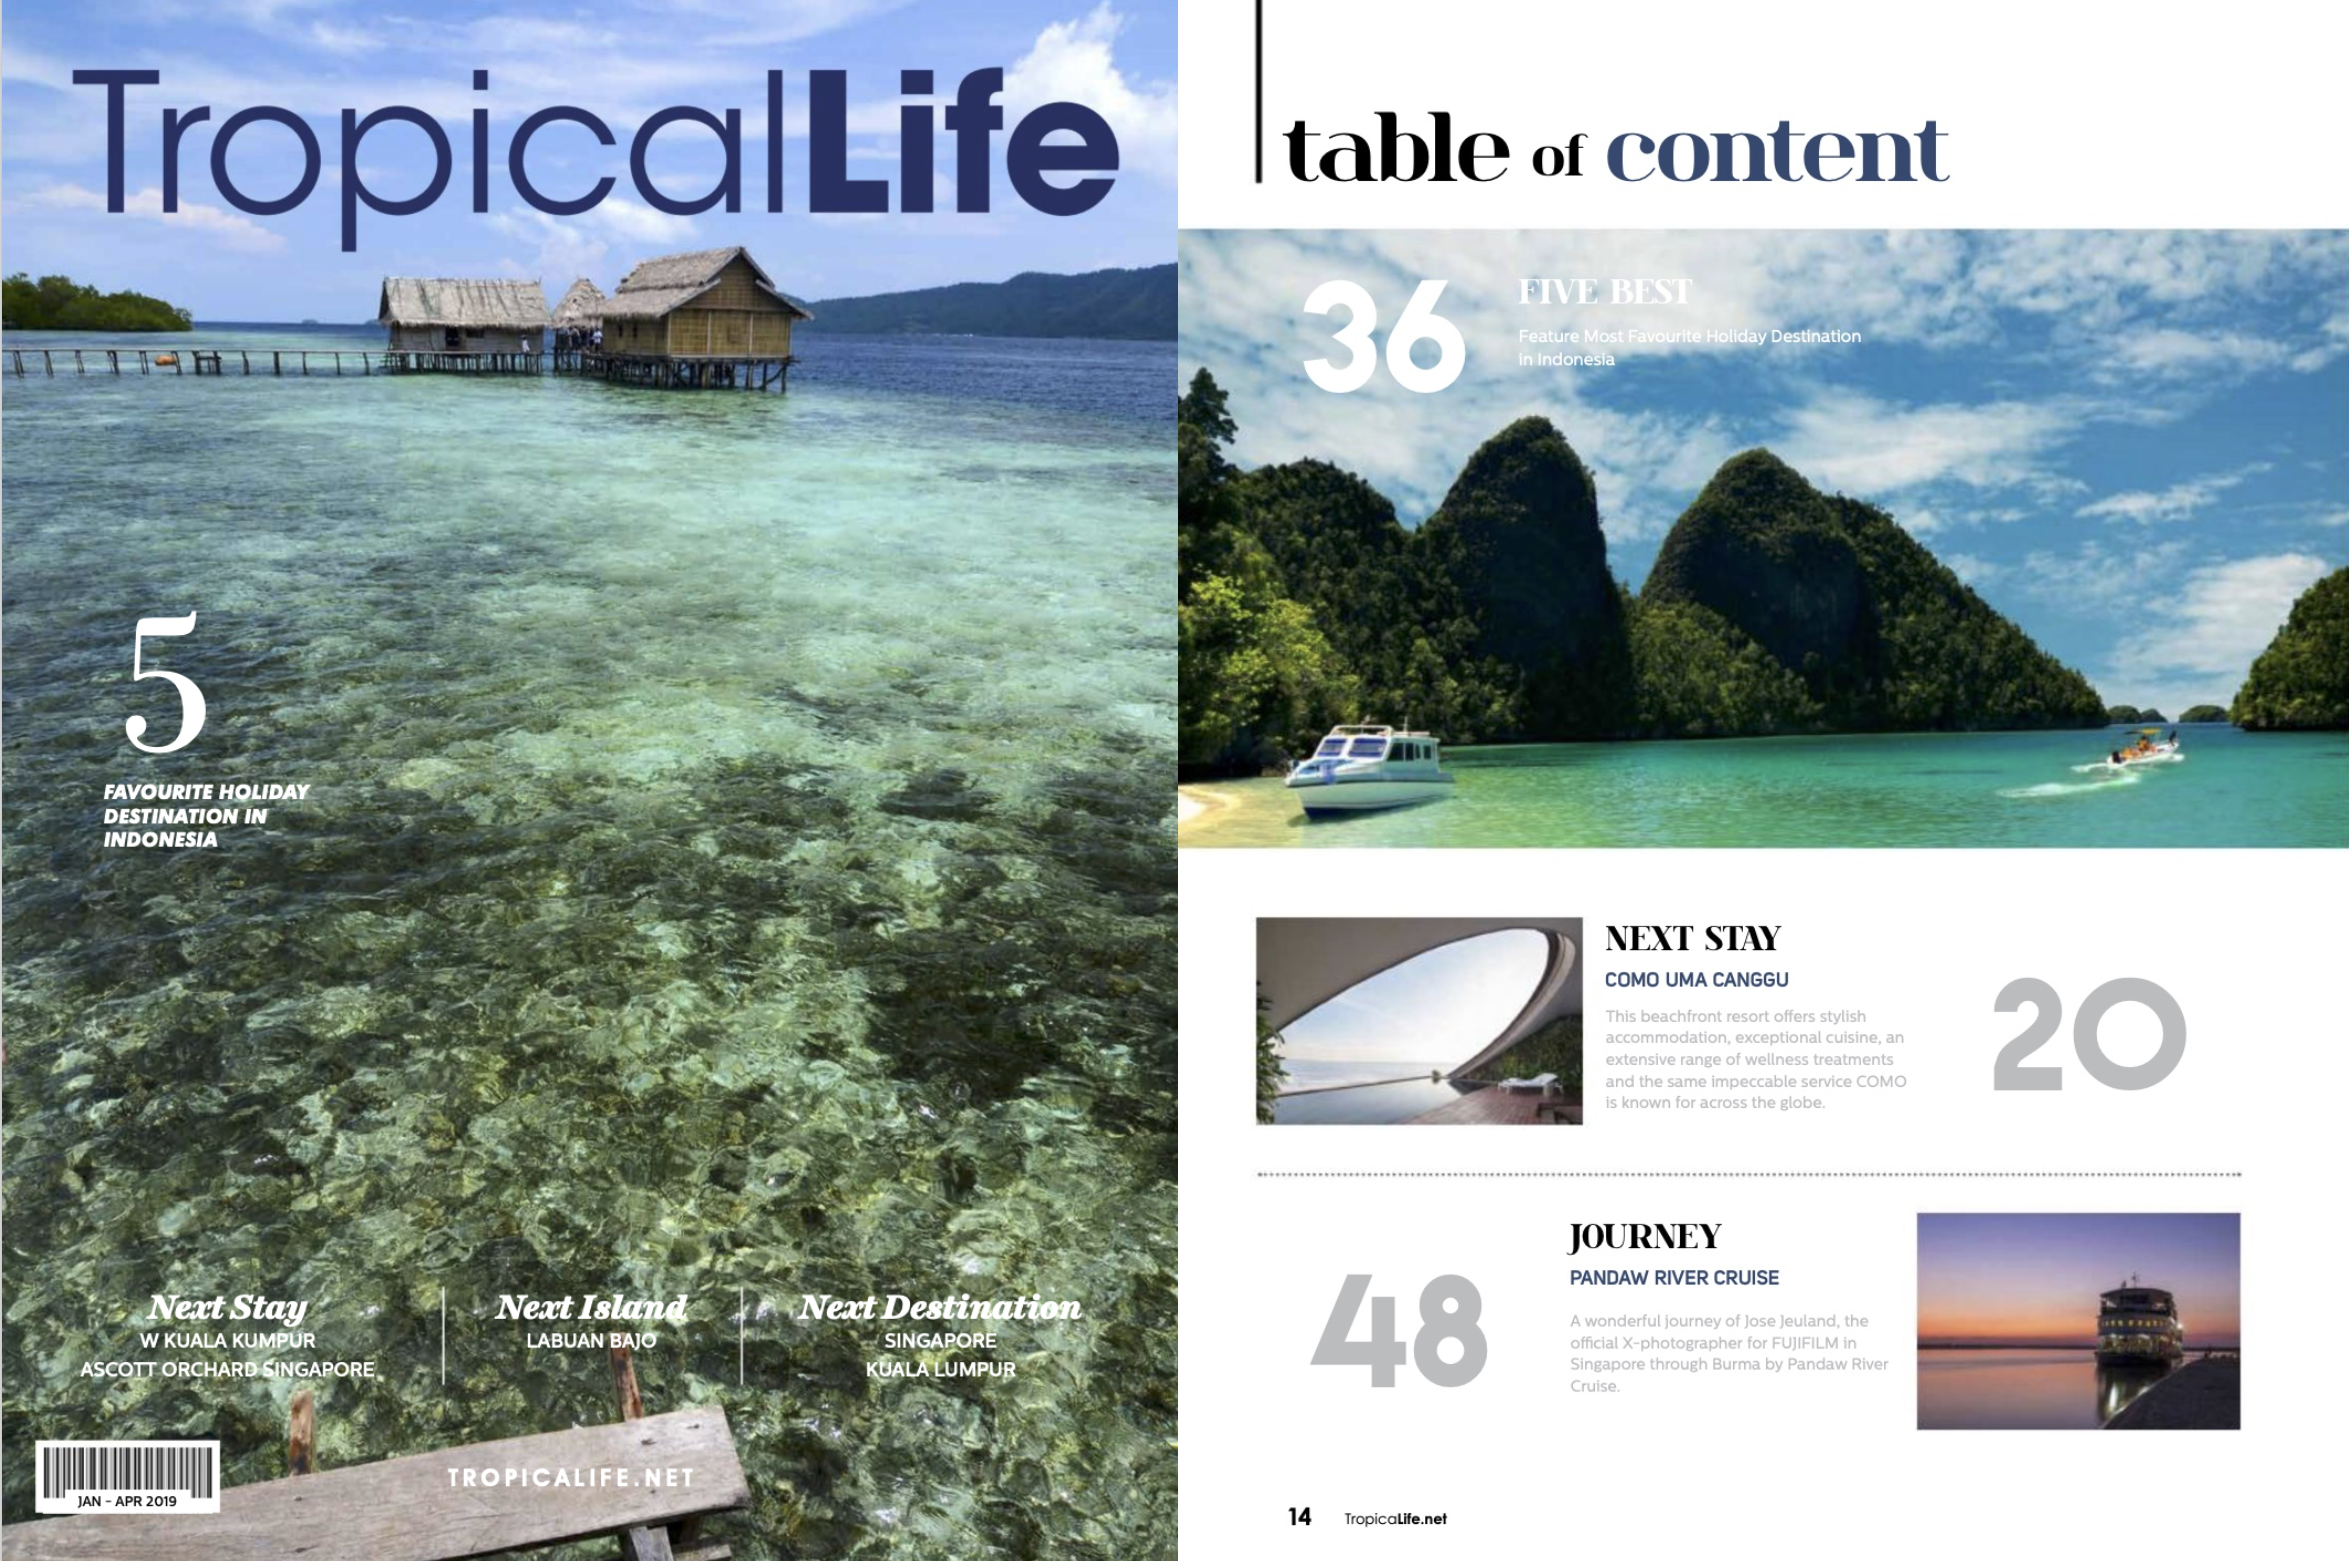 Tropicallife magazine Jan/Apr 2019 Pandaw boat cruise Myanmar Jose Jeuland photographer travel